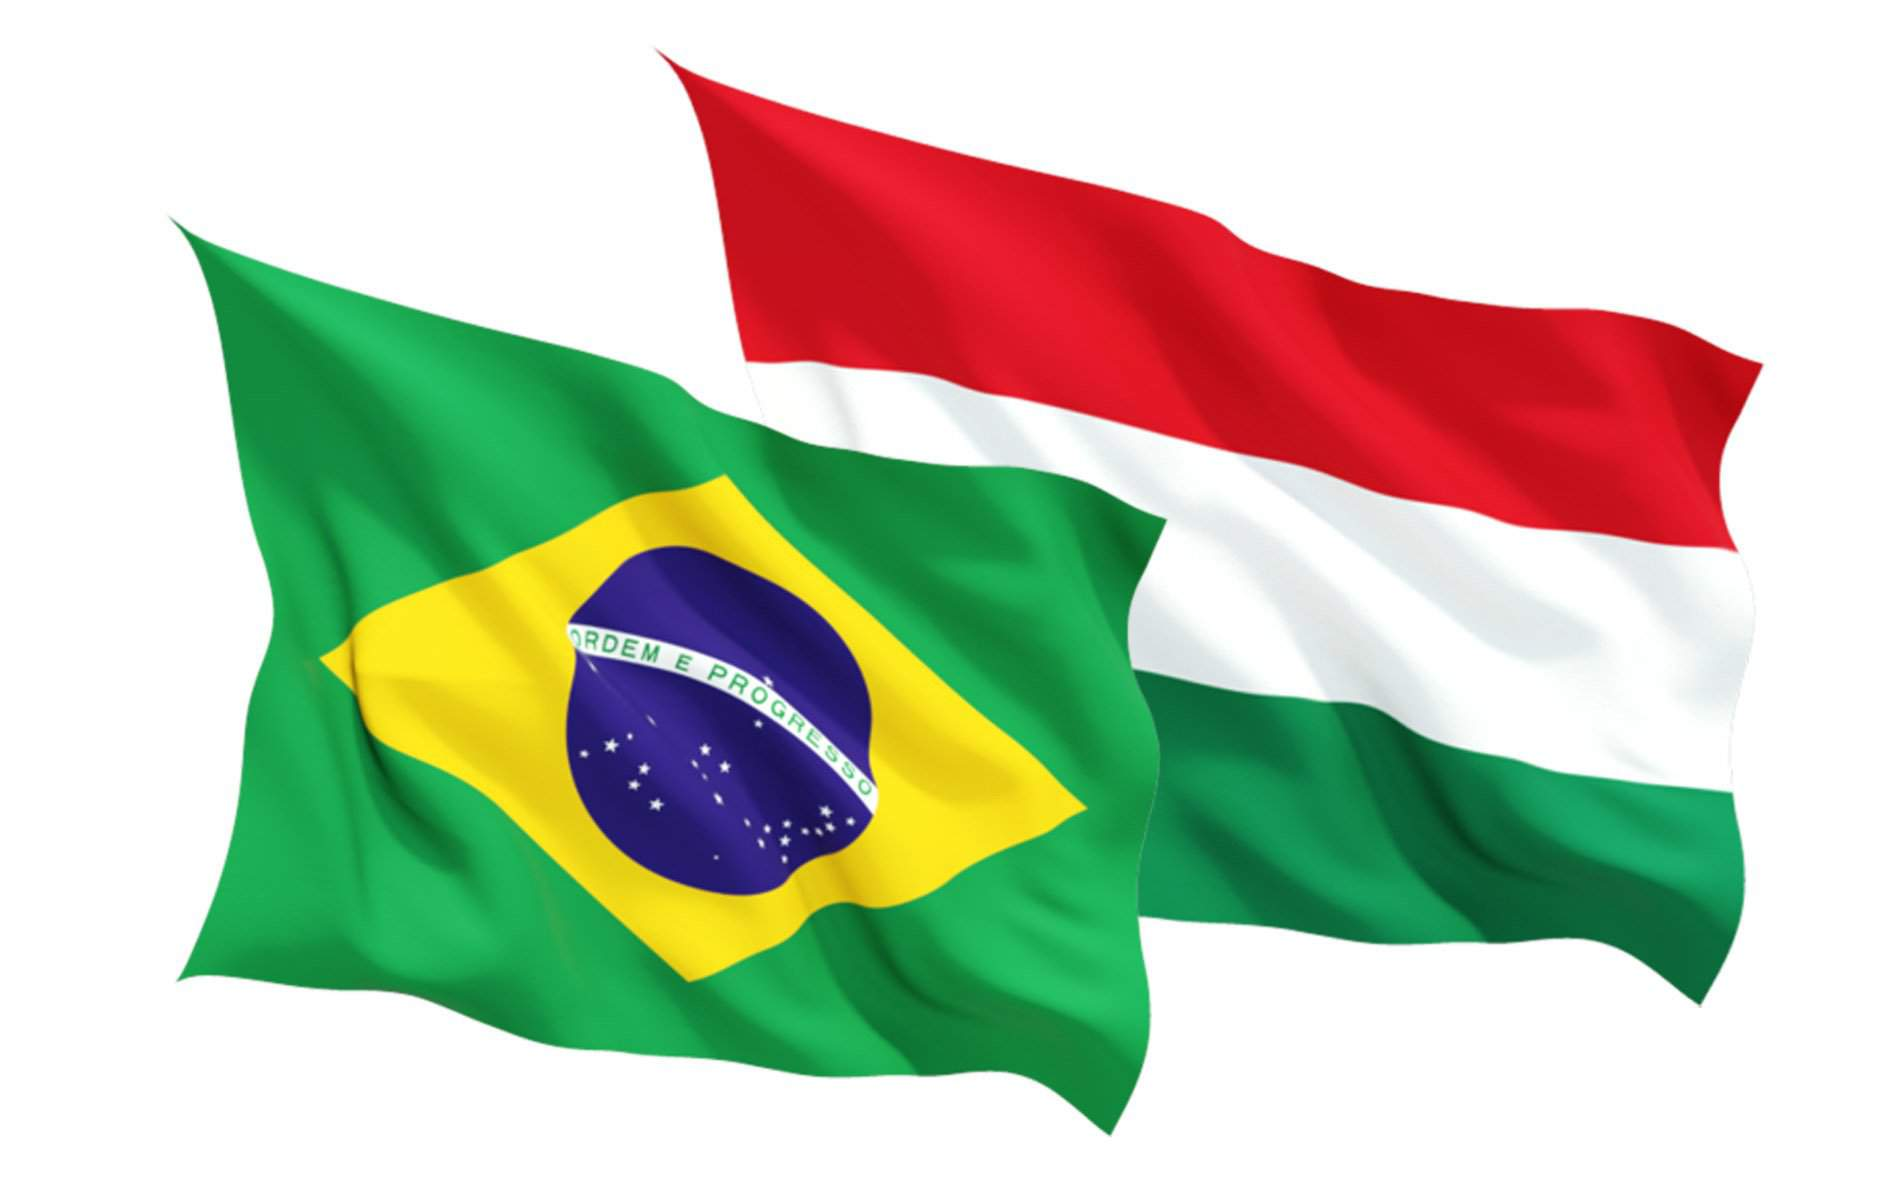 President Áder to open Hungarian cultural conference in Brazil